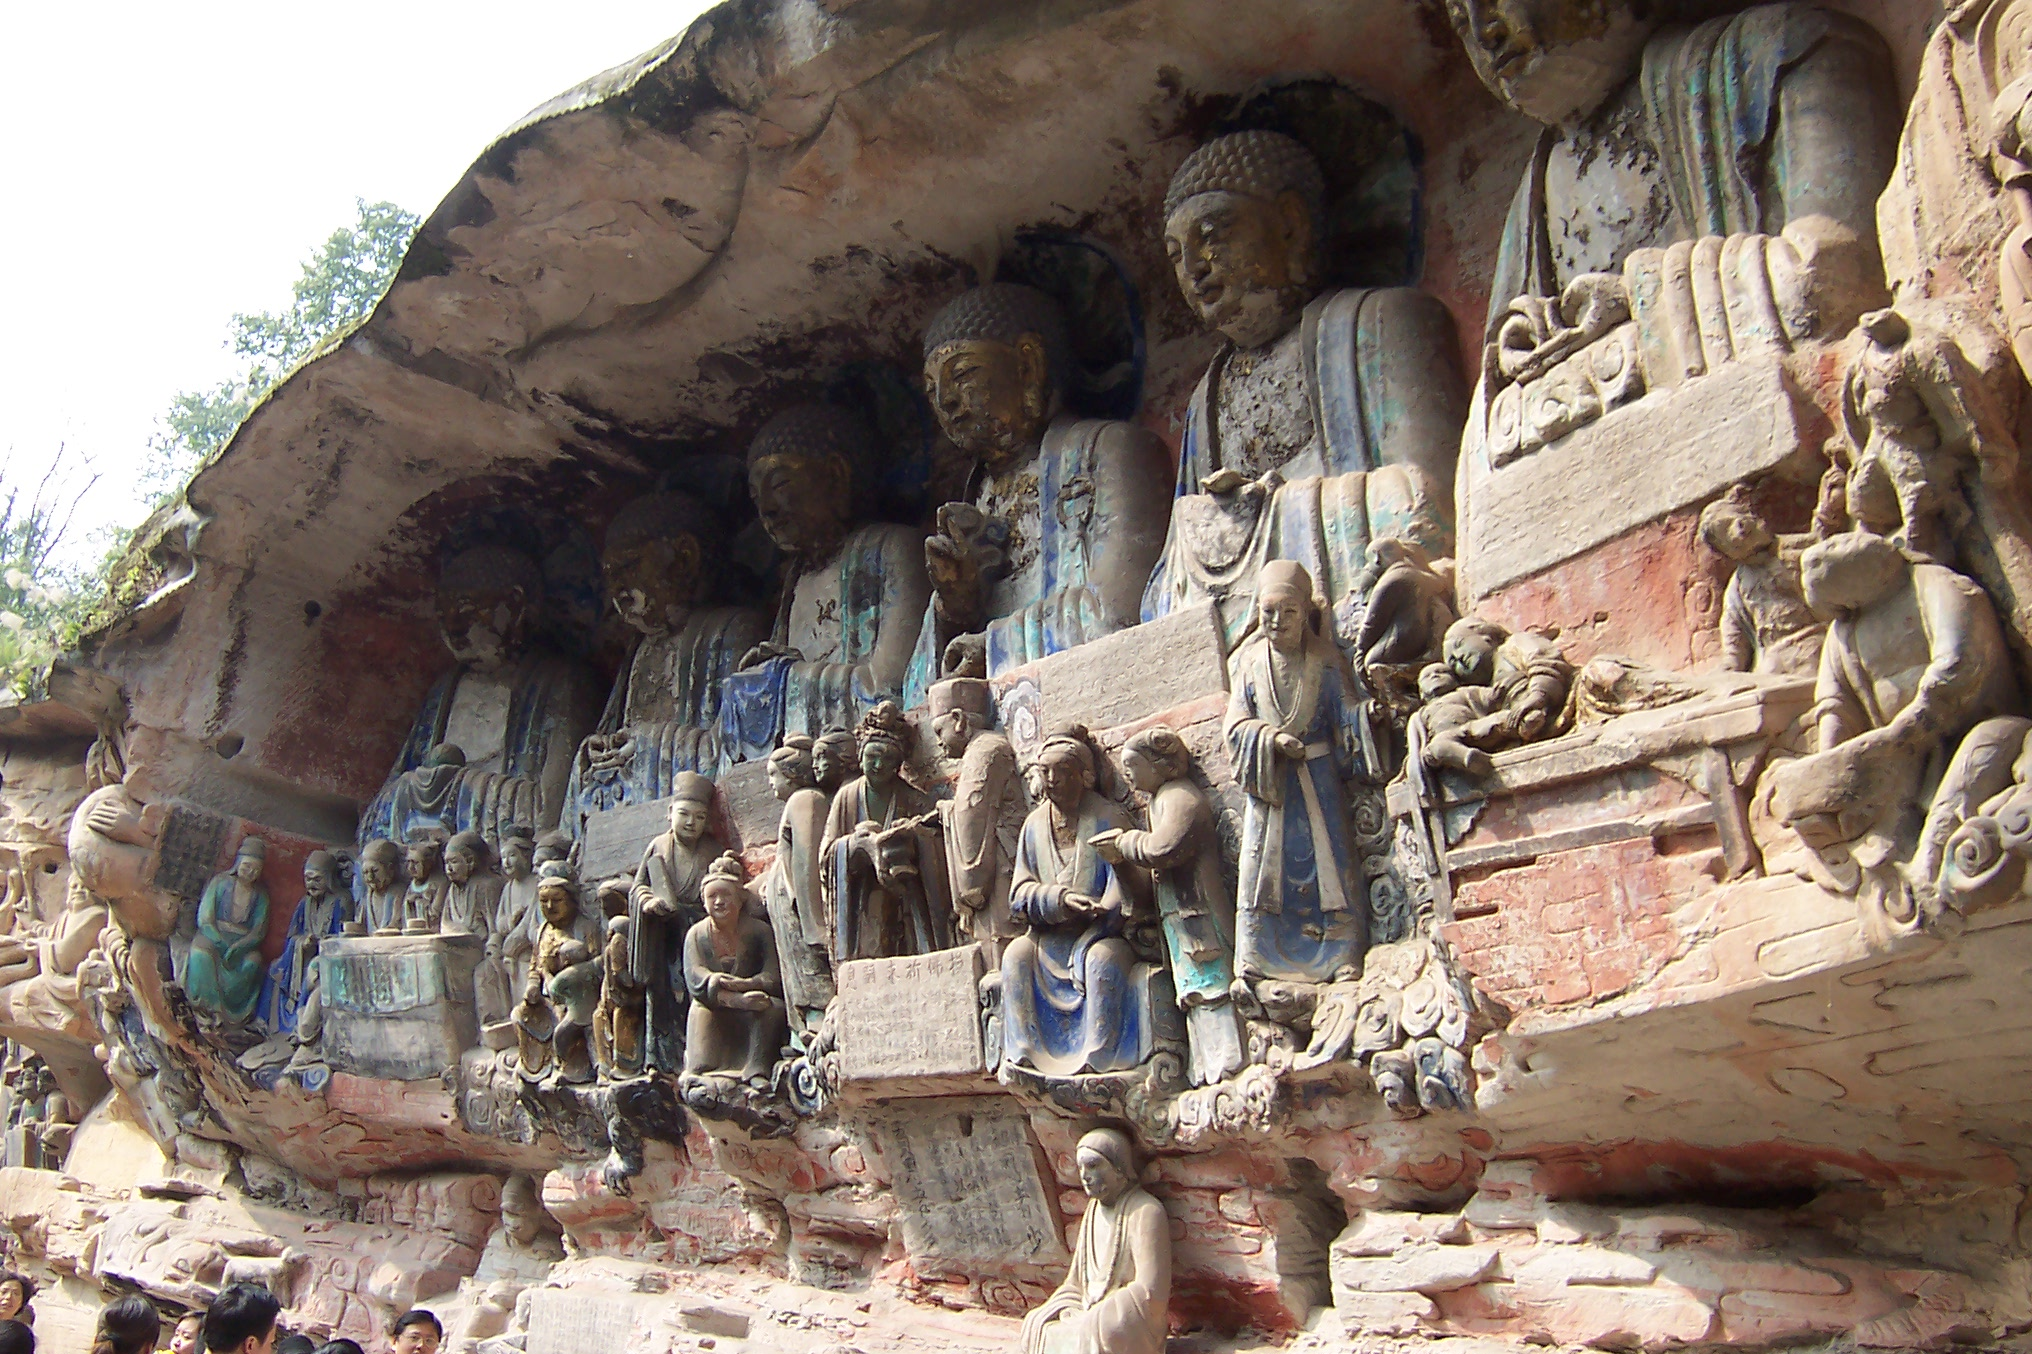 http://upload.wikimedia.org/wikipedia/commons/d/de/Dazu_rock_carvings_baoding_buddhas.JPG